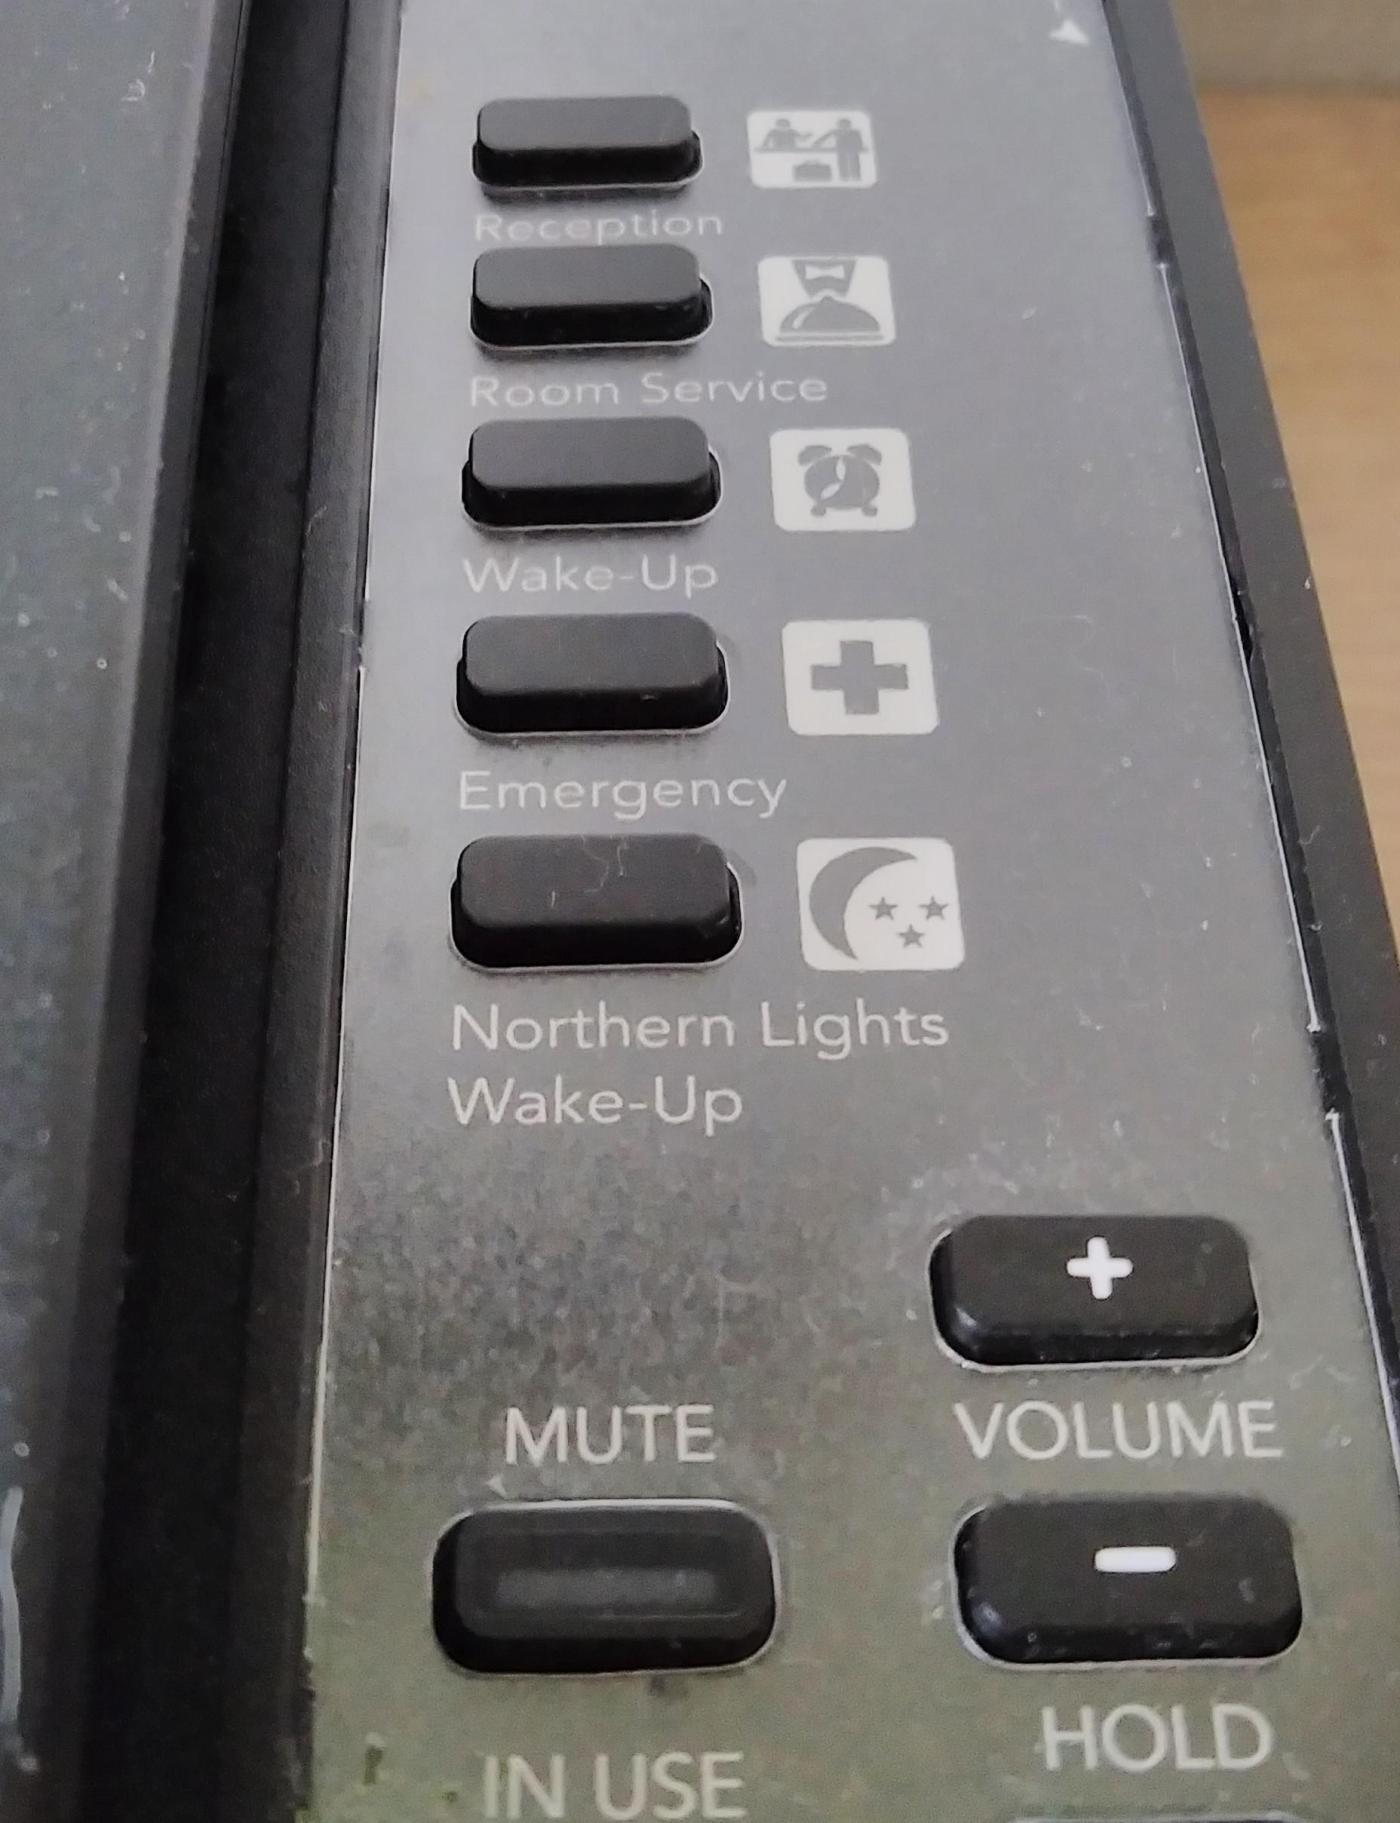 hotel phone with northern lights wake up button